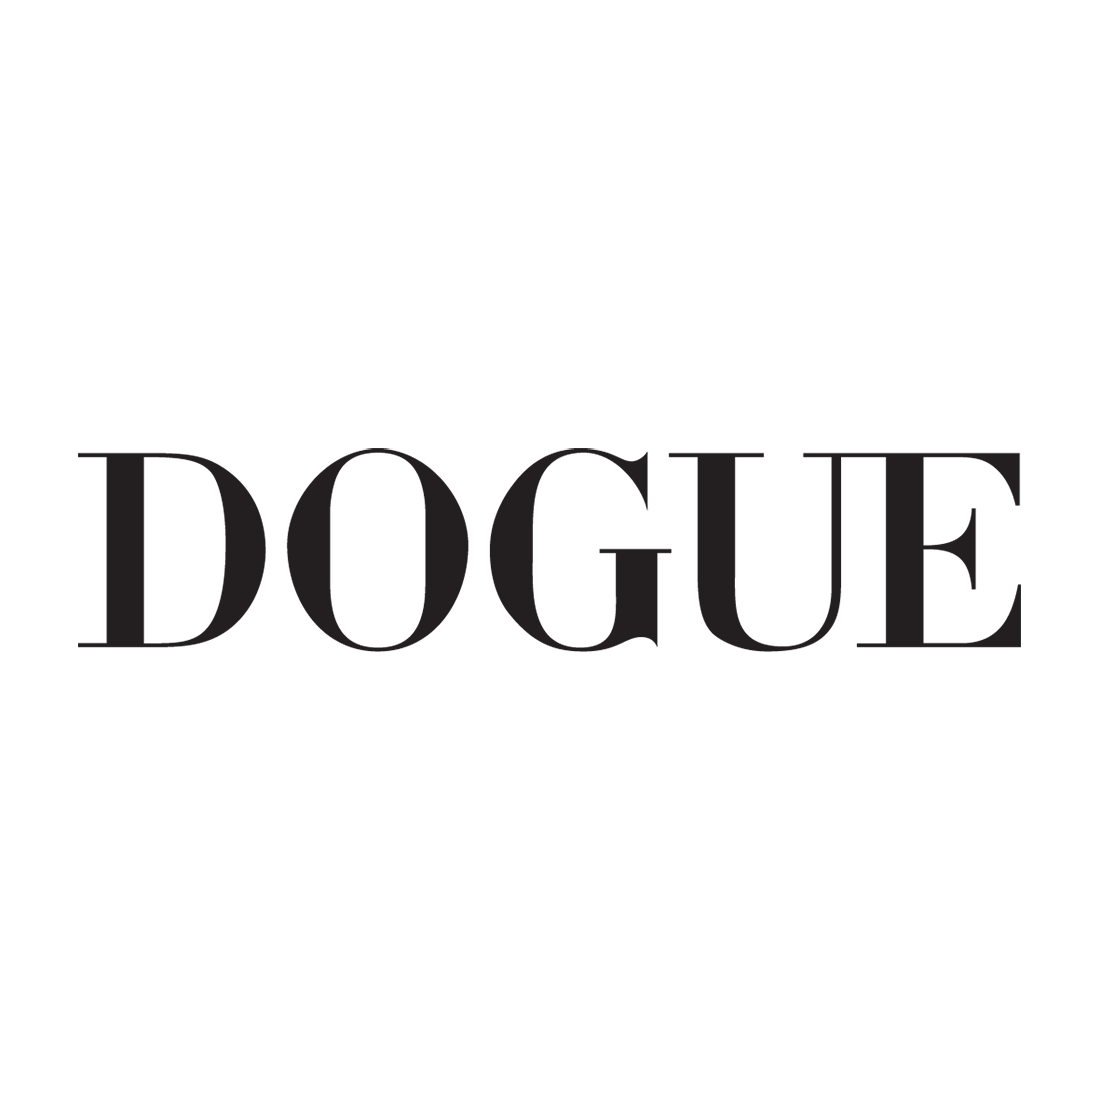 DogueLogo.png